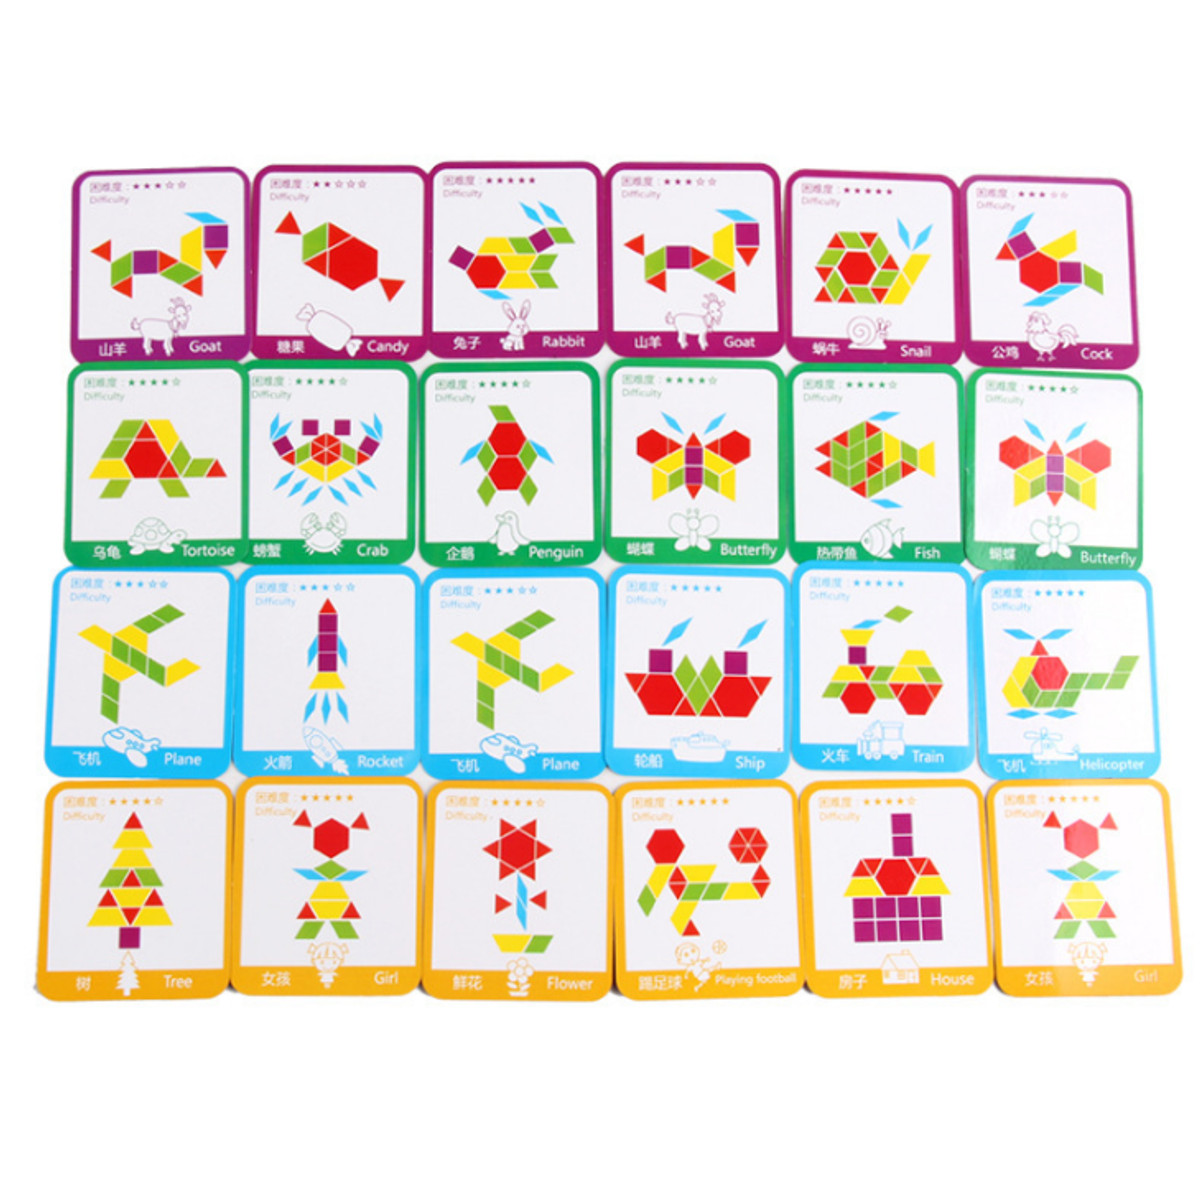 155pcs Kids Colorful Wood Jigsaw Puzzle IQ Game Intelligent Educational Toys Brain Intelligent Educational Toys for 3Y+ Kids